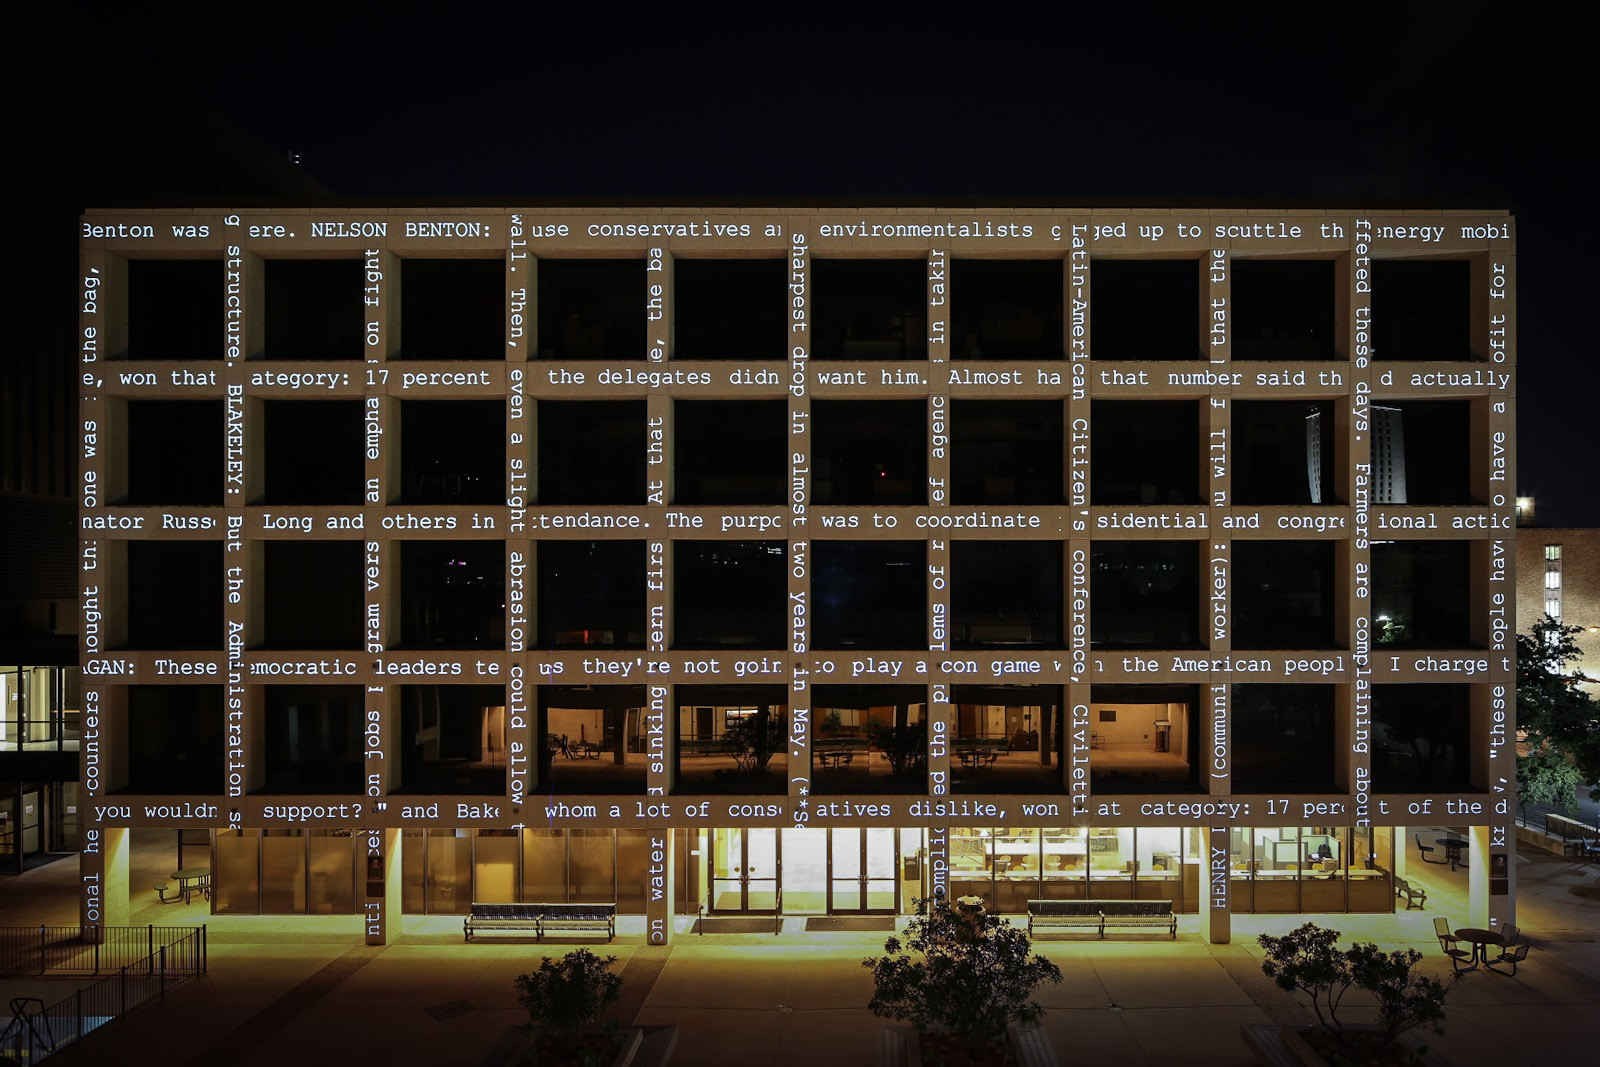 A building with projected text